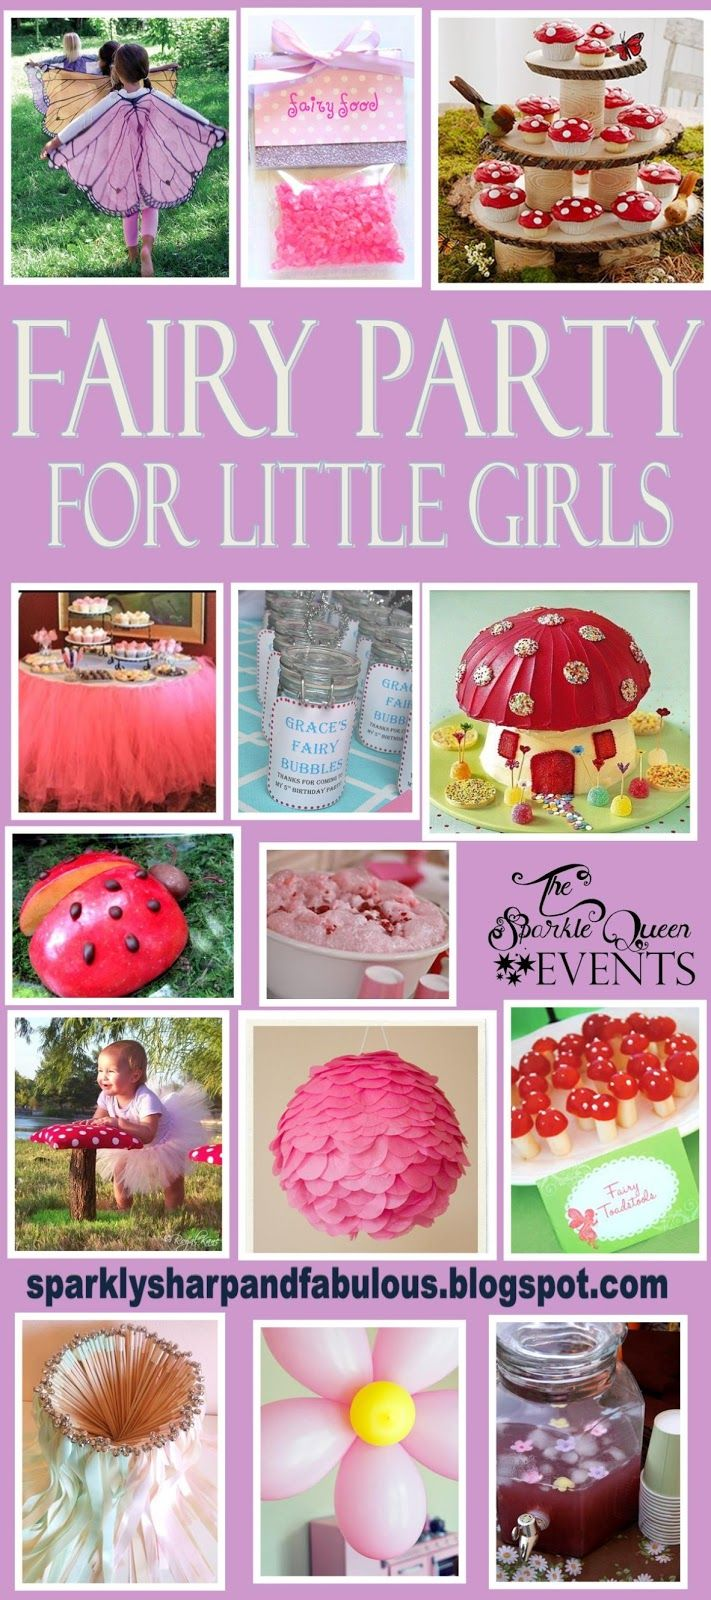 A Fairy Party for Little Girls - idea board